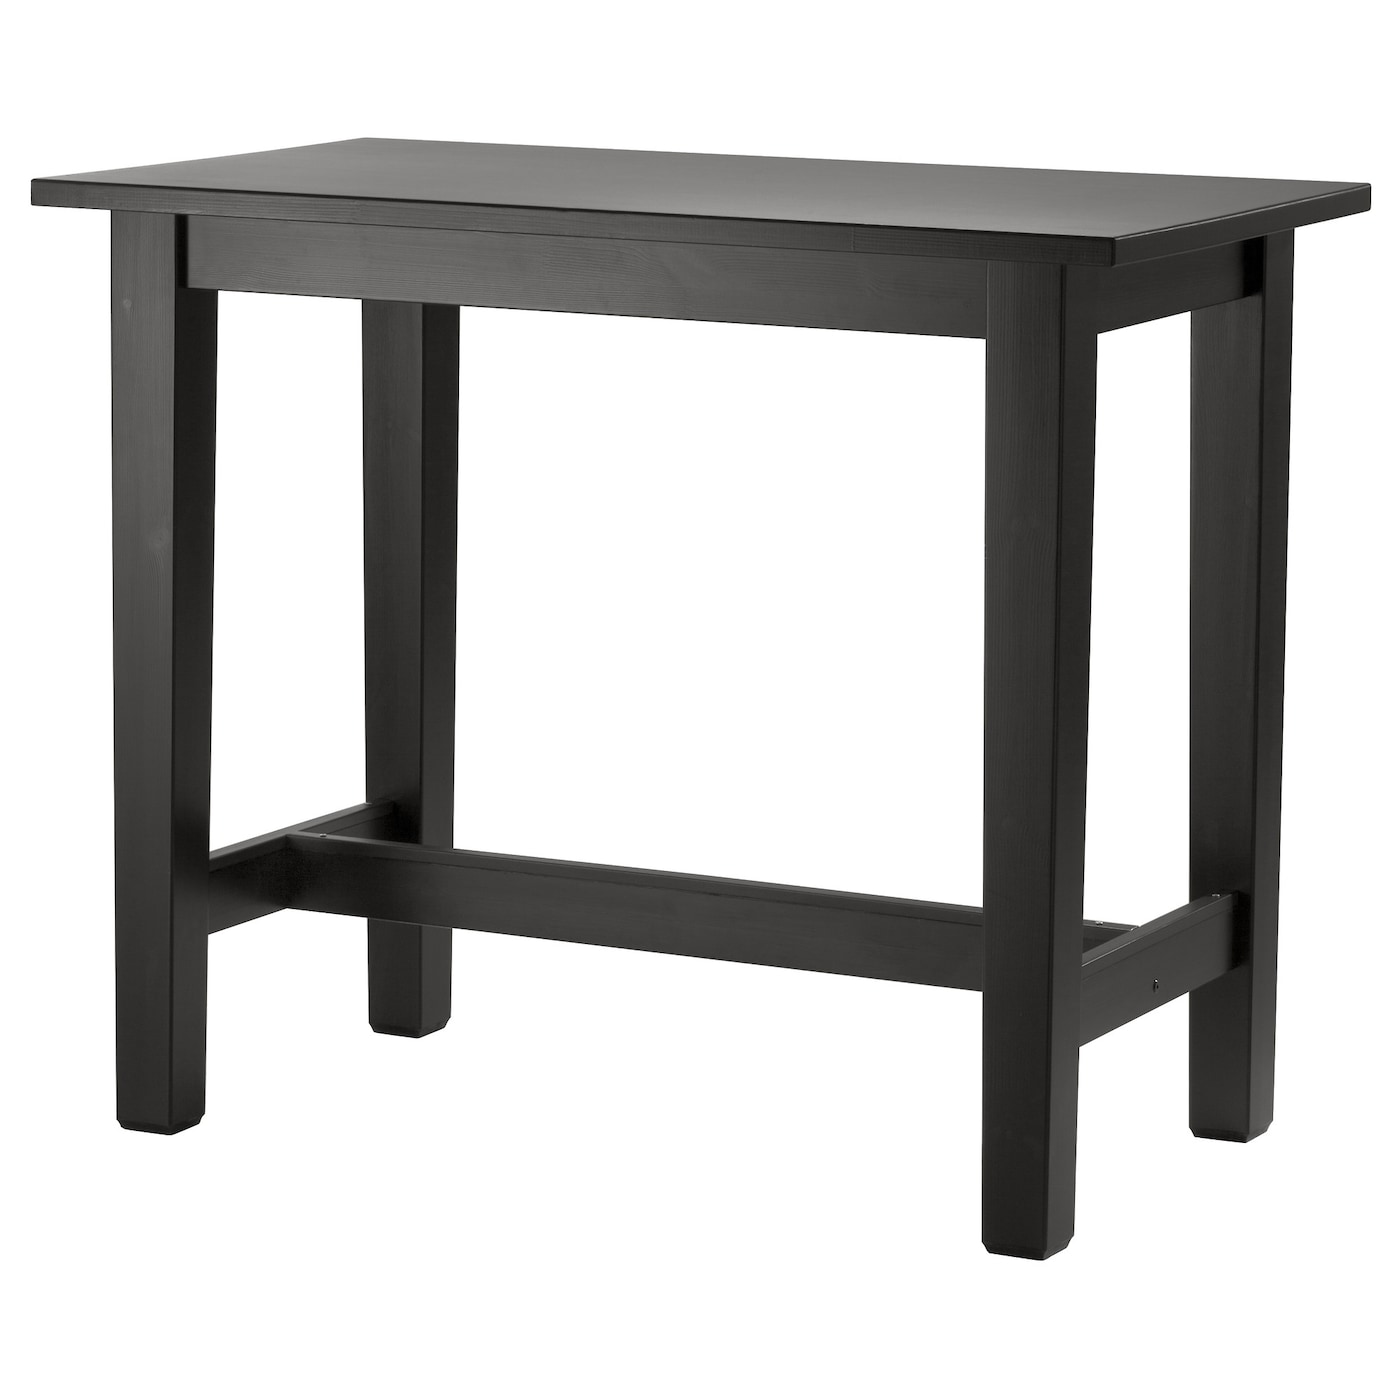 1000 ideas about table haute ikea on pinterest bar ikea. Black Bedroom Furniture Sets. Home Design Ideas